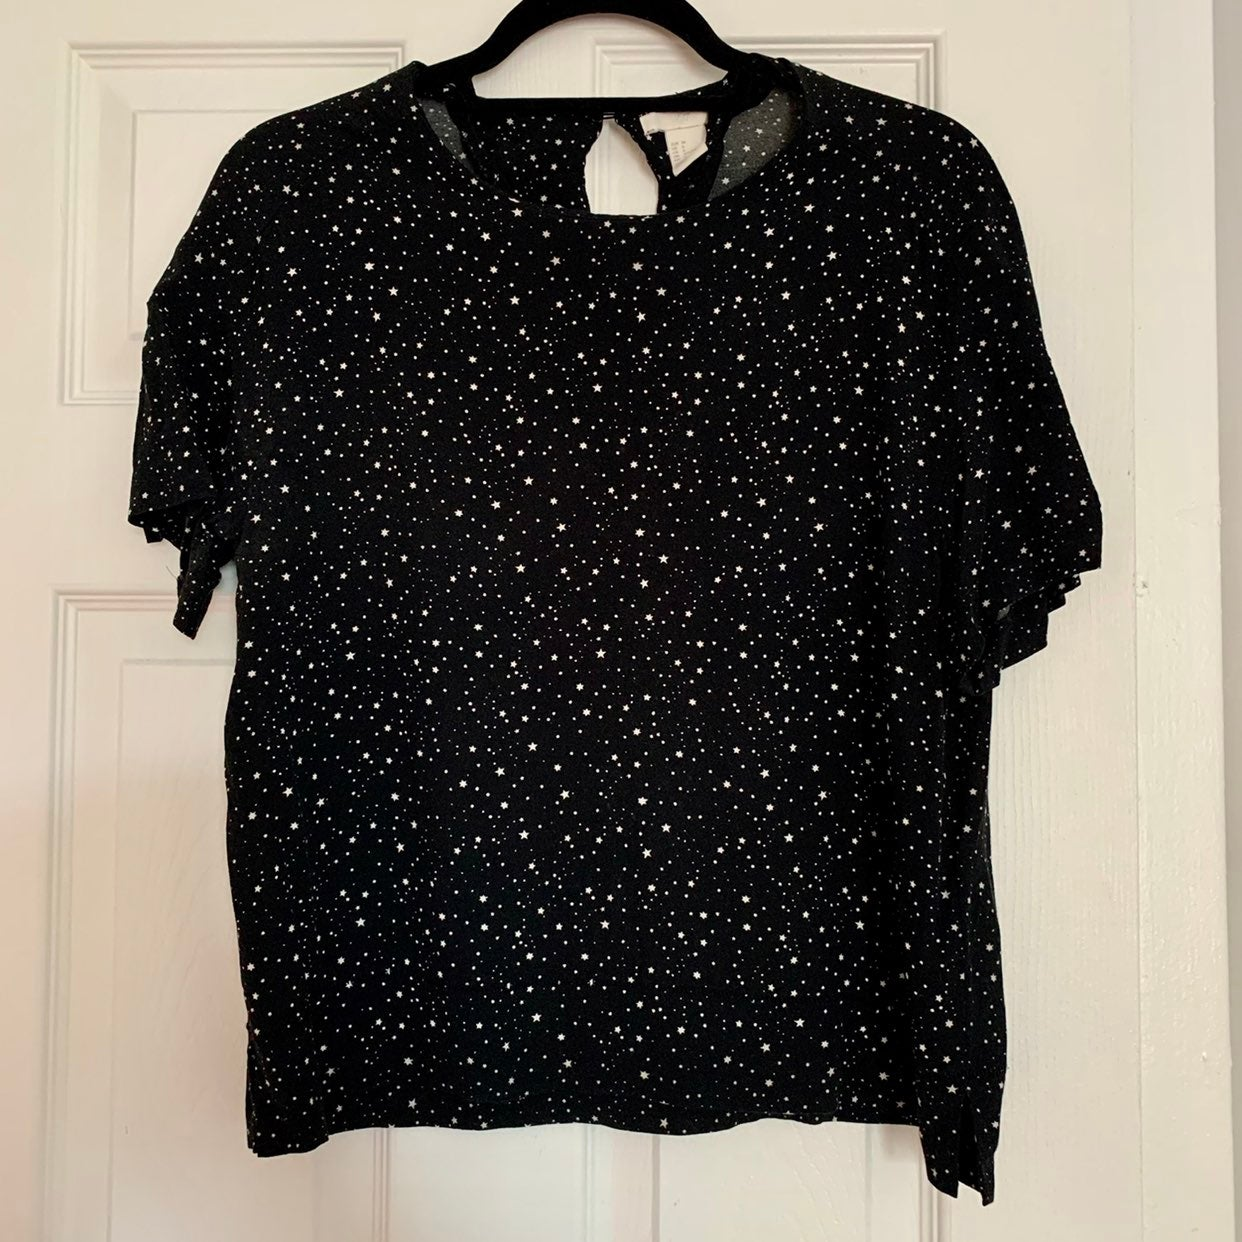 H&M Black and White Stars Blouse size 6